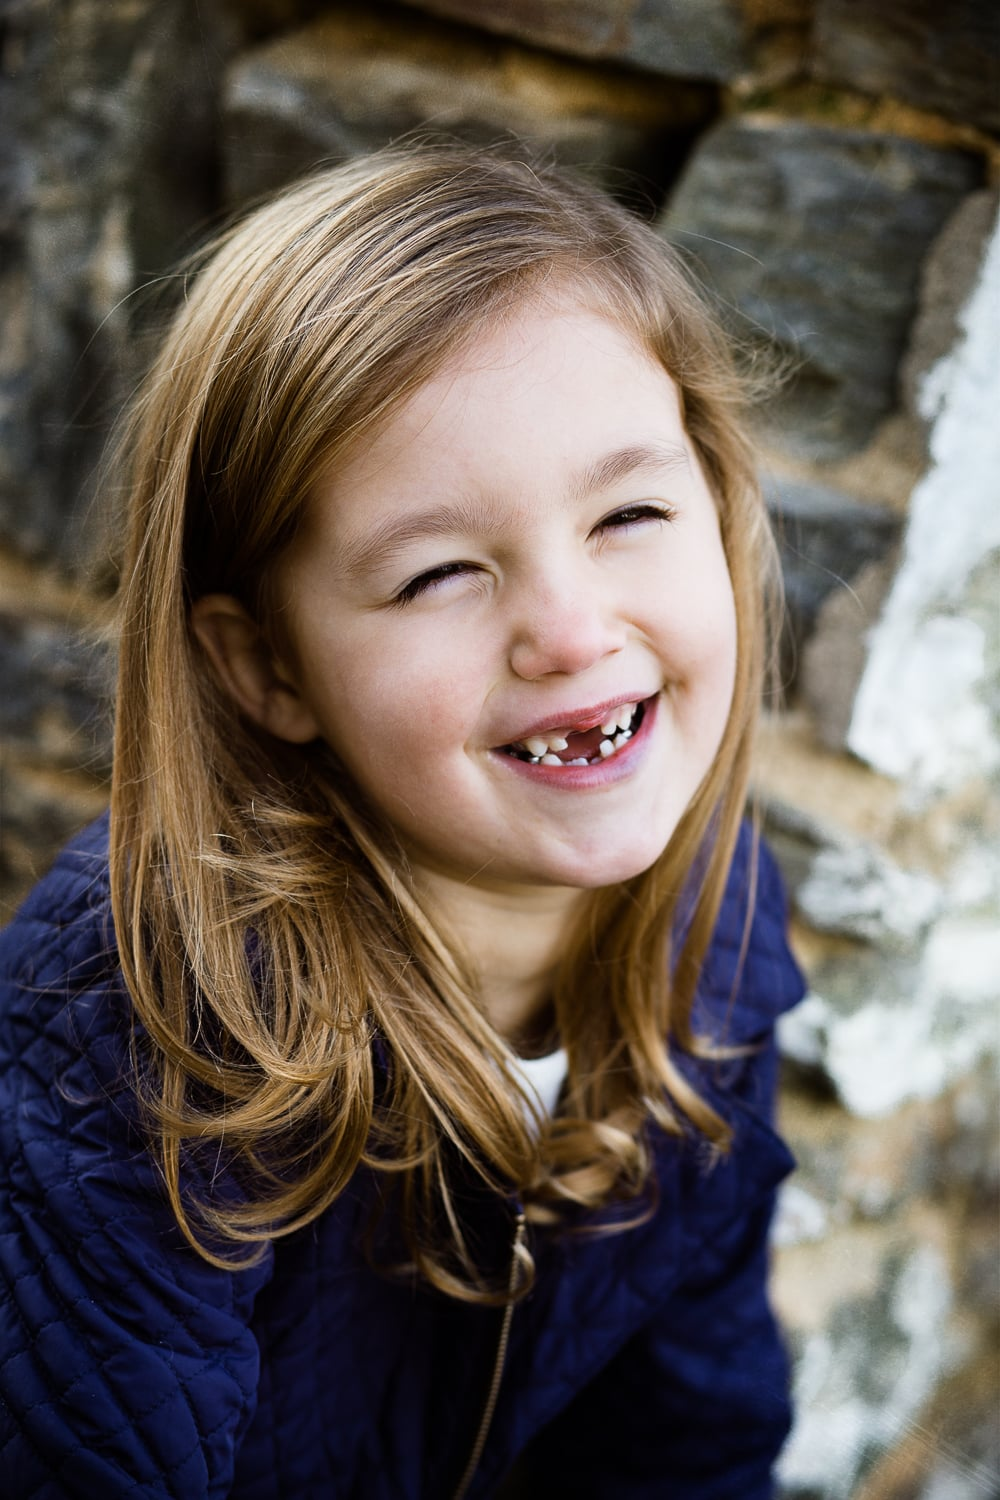 cute gap tooth grin photo of little girl